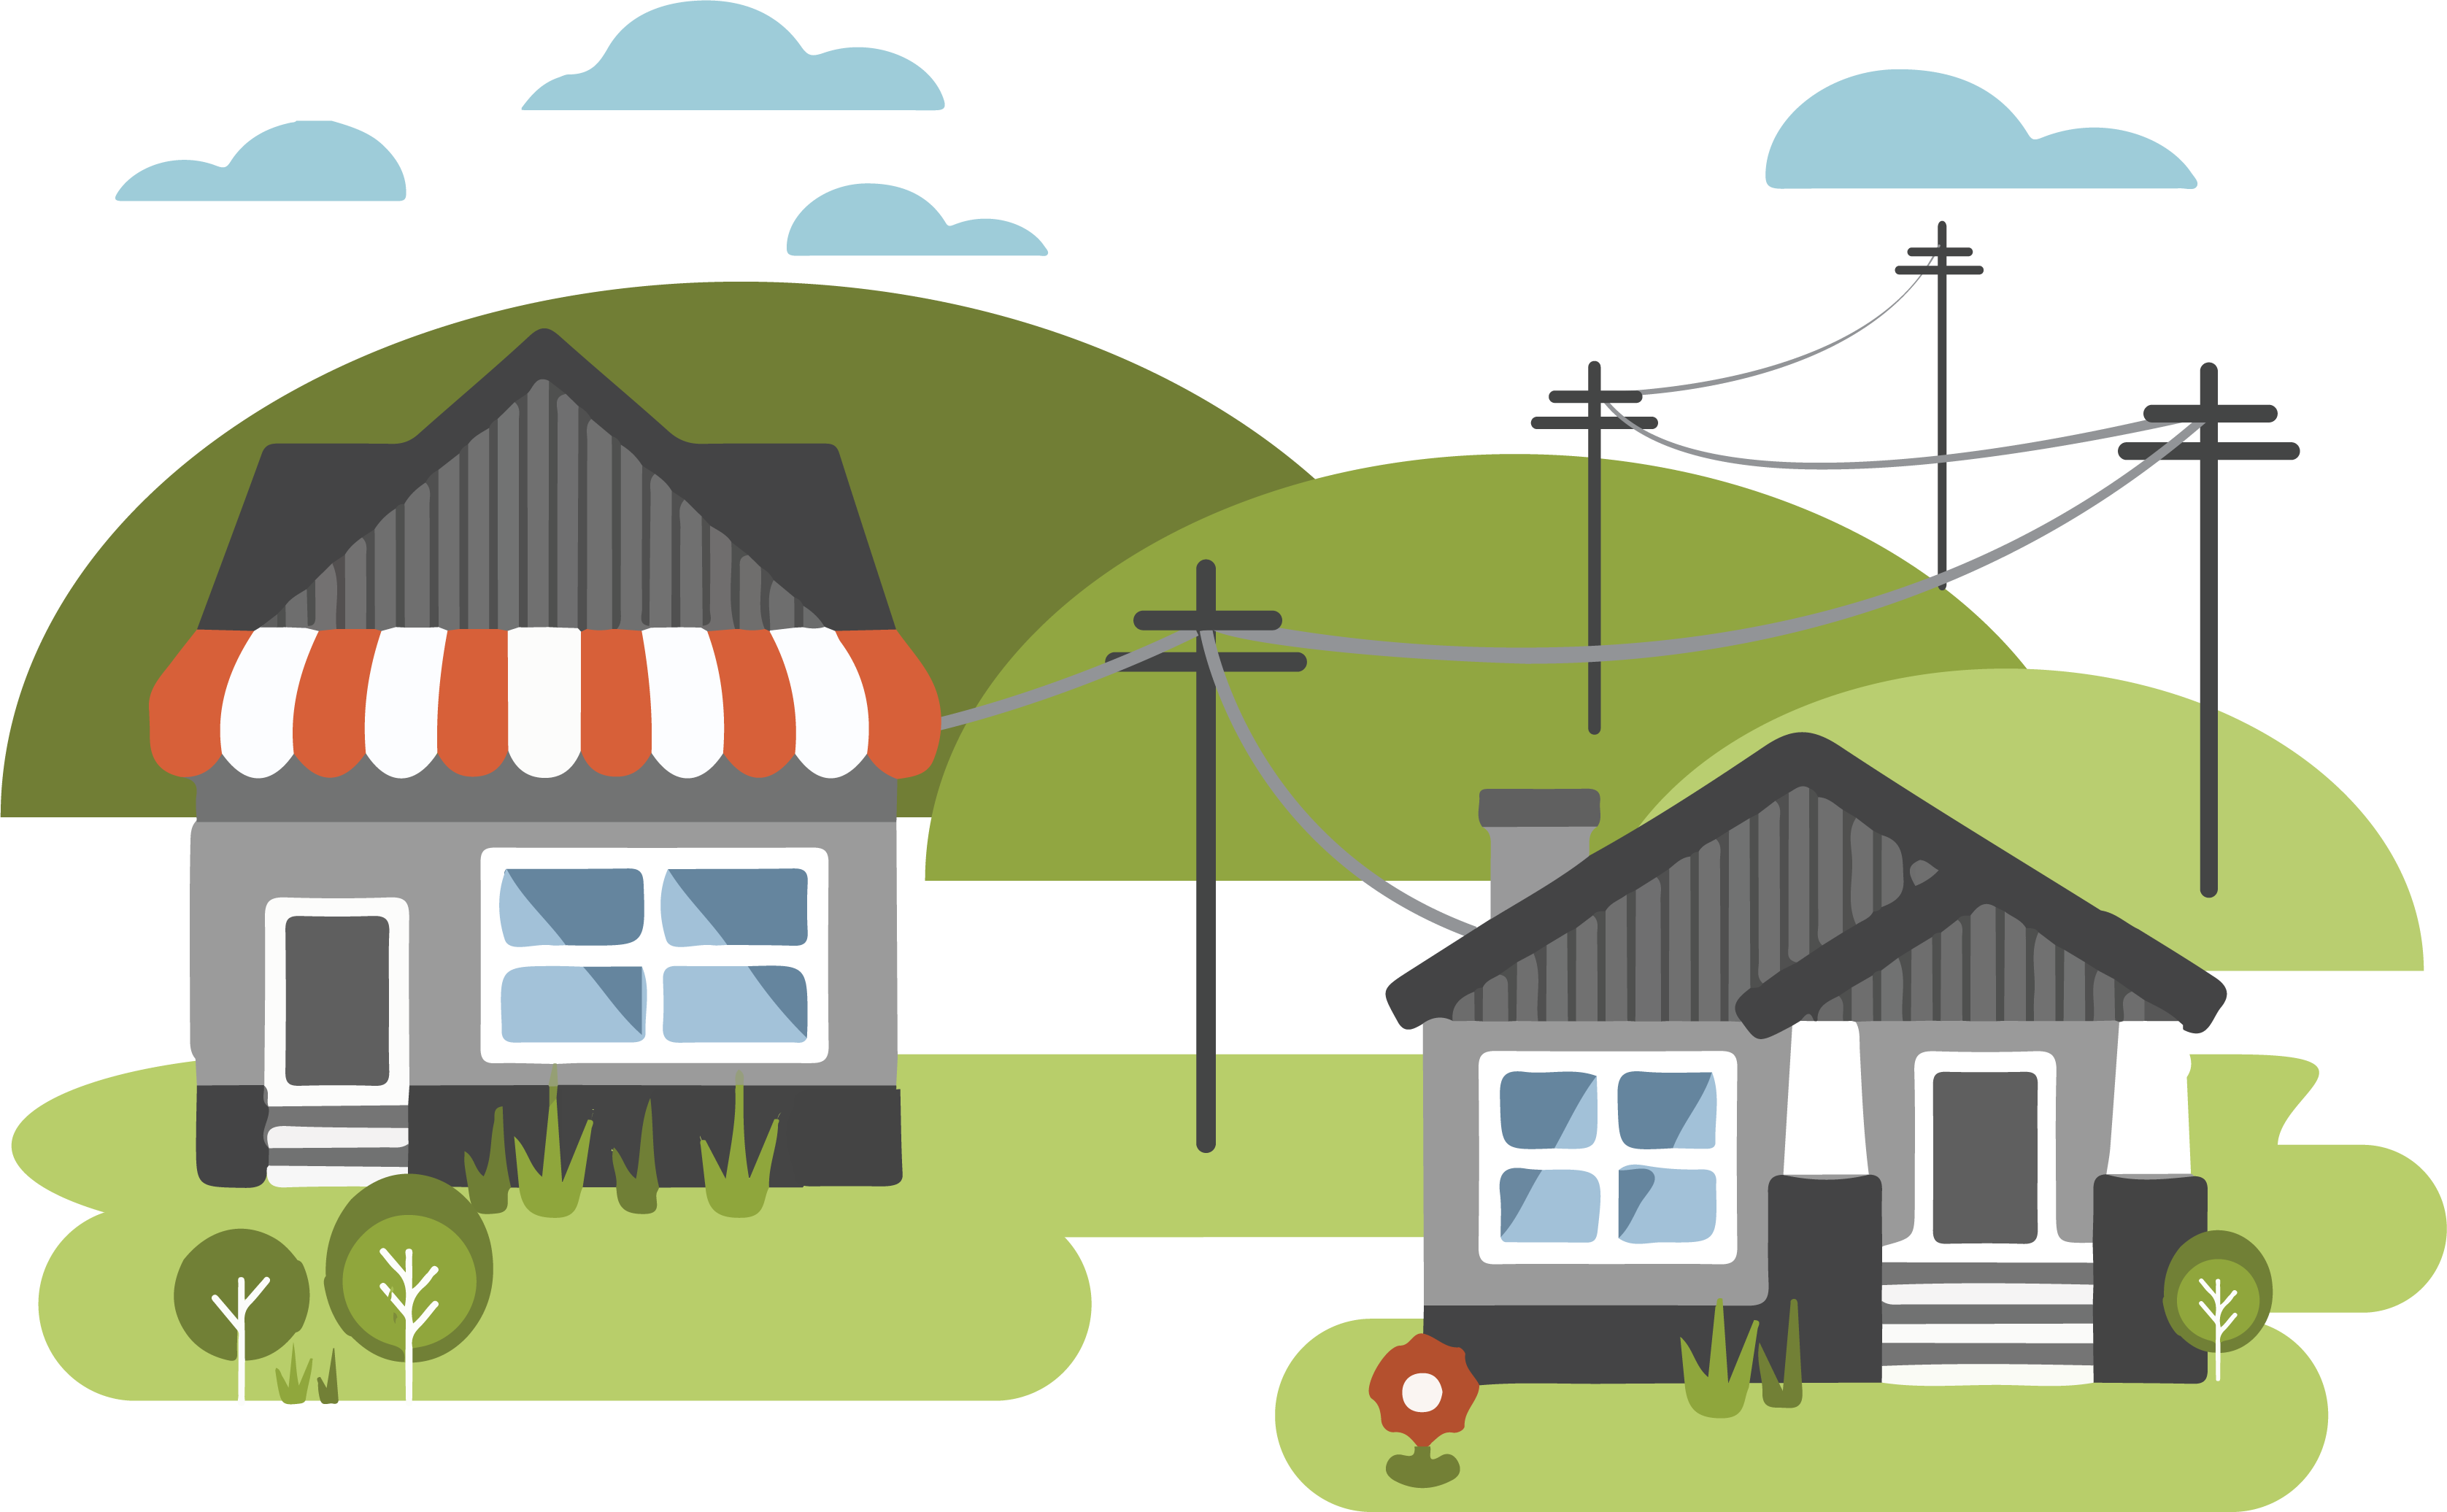 A graphic of a house and a business with utility poles behind them